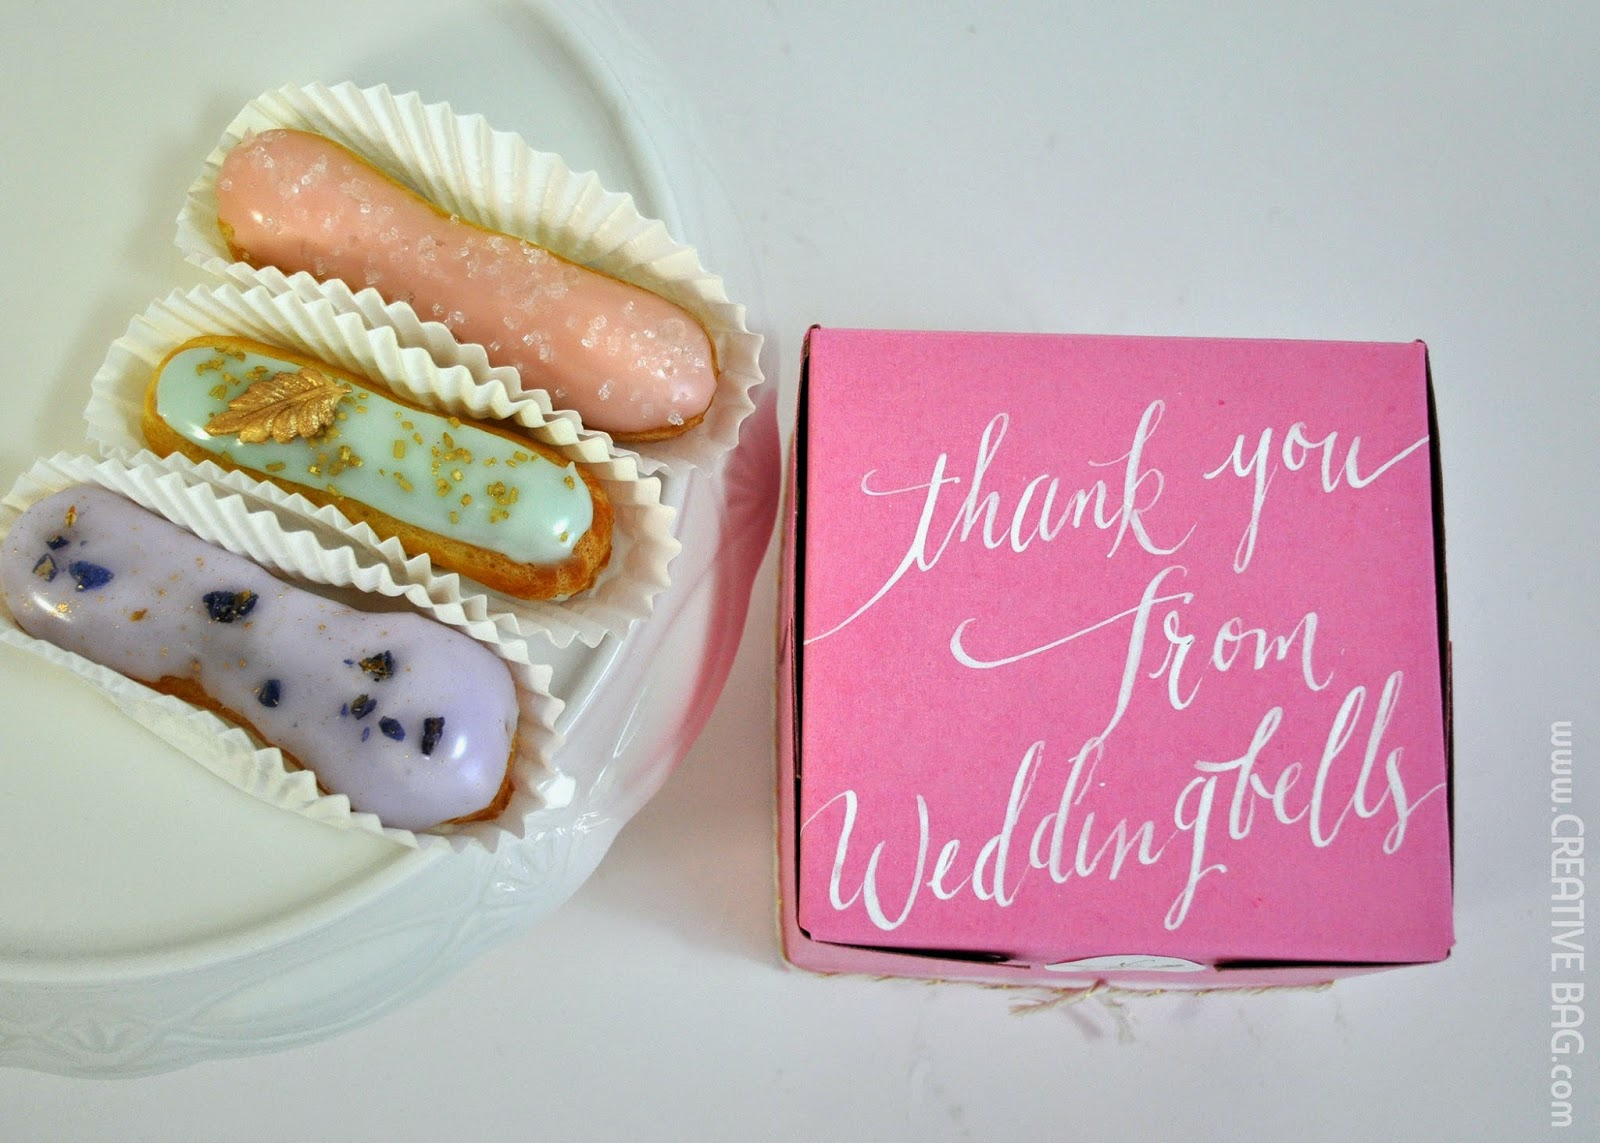 eclair favors - bakery boxes with beautiful calligraphy | creativebag.com